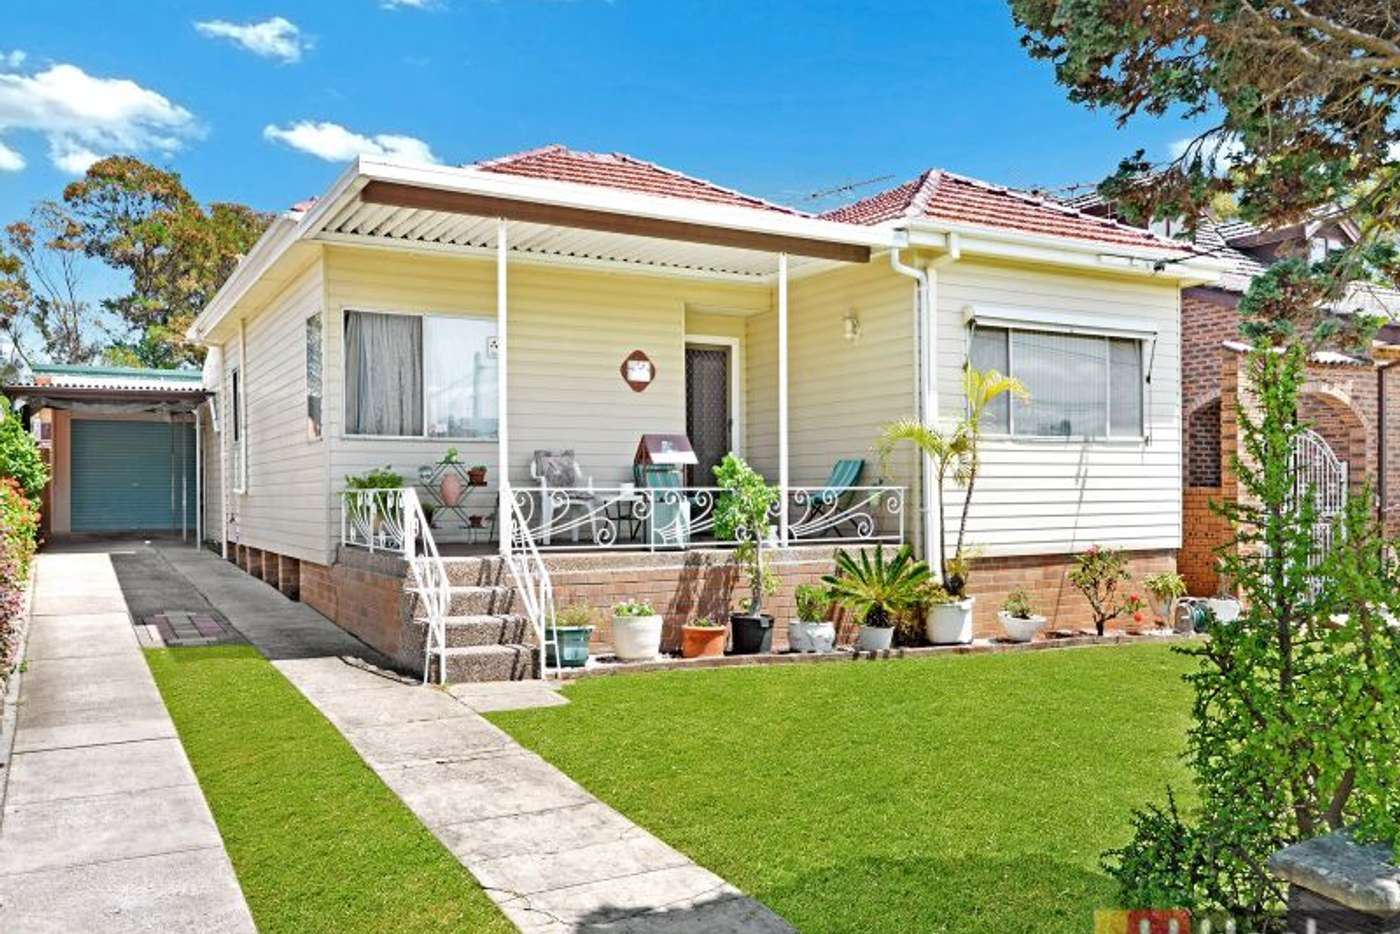 Main view of Homely house listing, 52 Australia St, Bass Hill NSW 2197